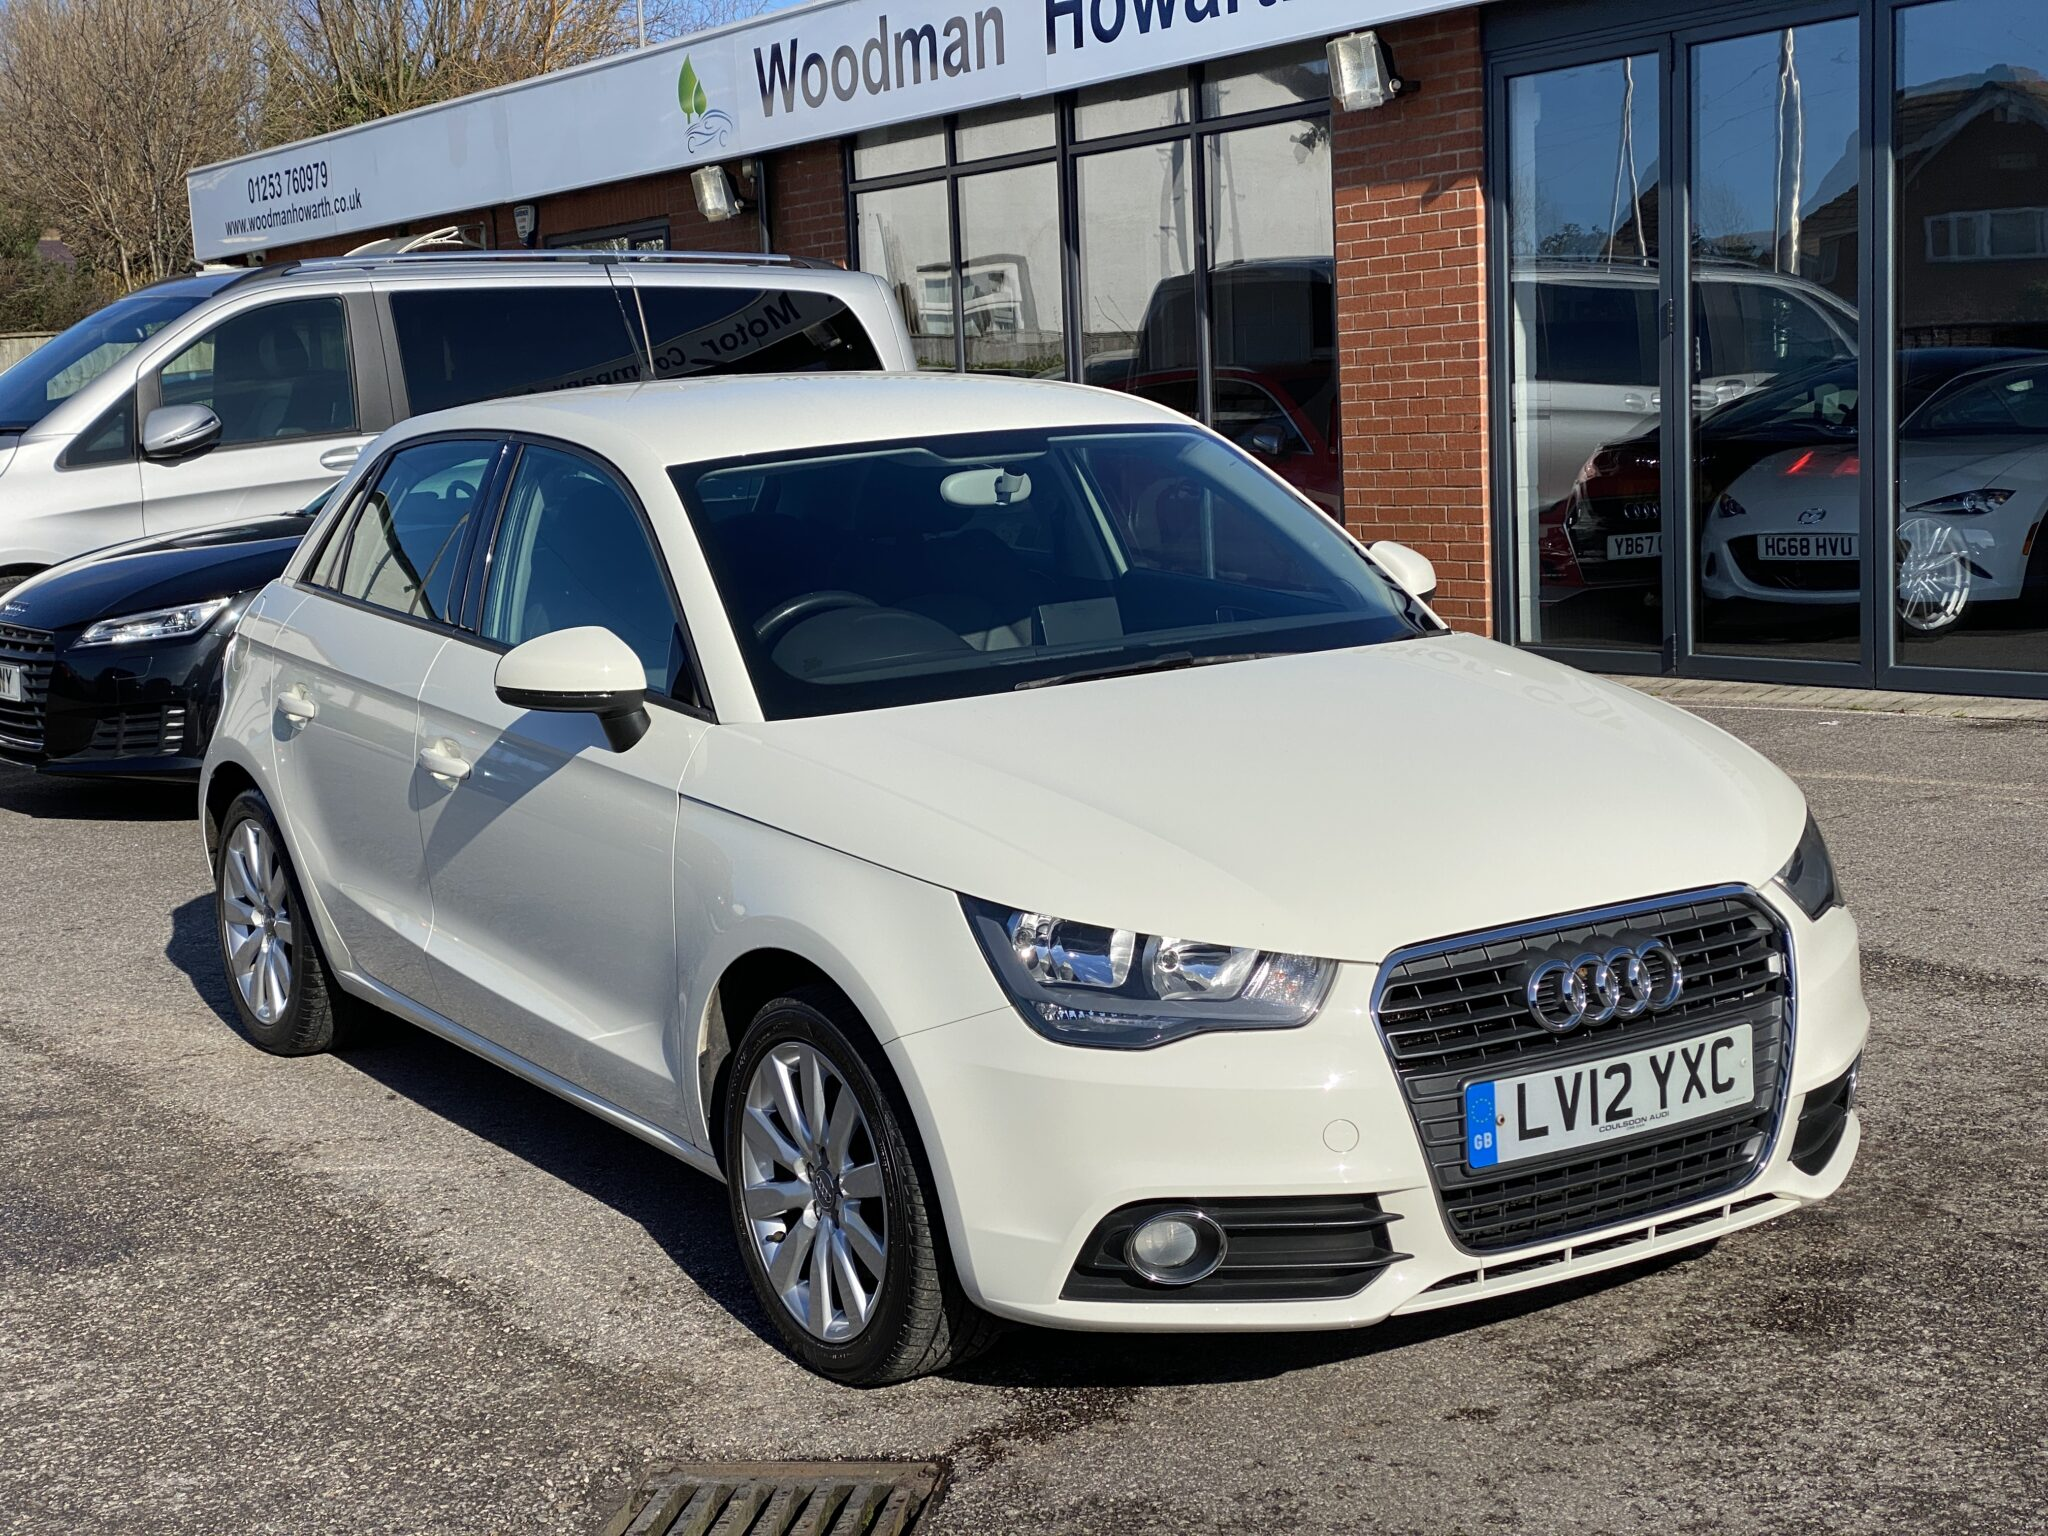 2012 12 AUDI A1 1.4 SPORT AUTOMATIC 5 DOOR 1 Prev Owner ONLY 27K Miles